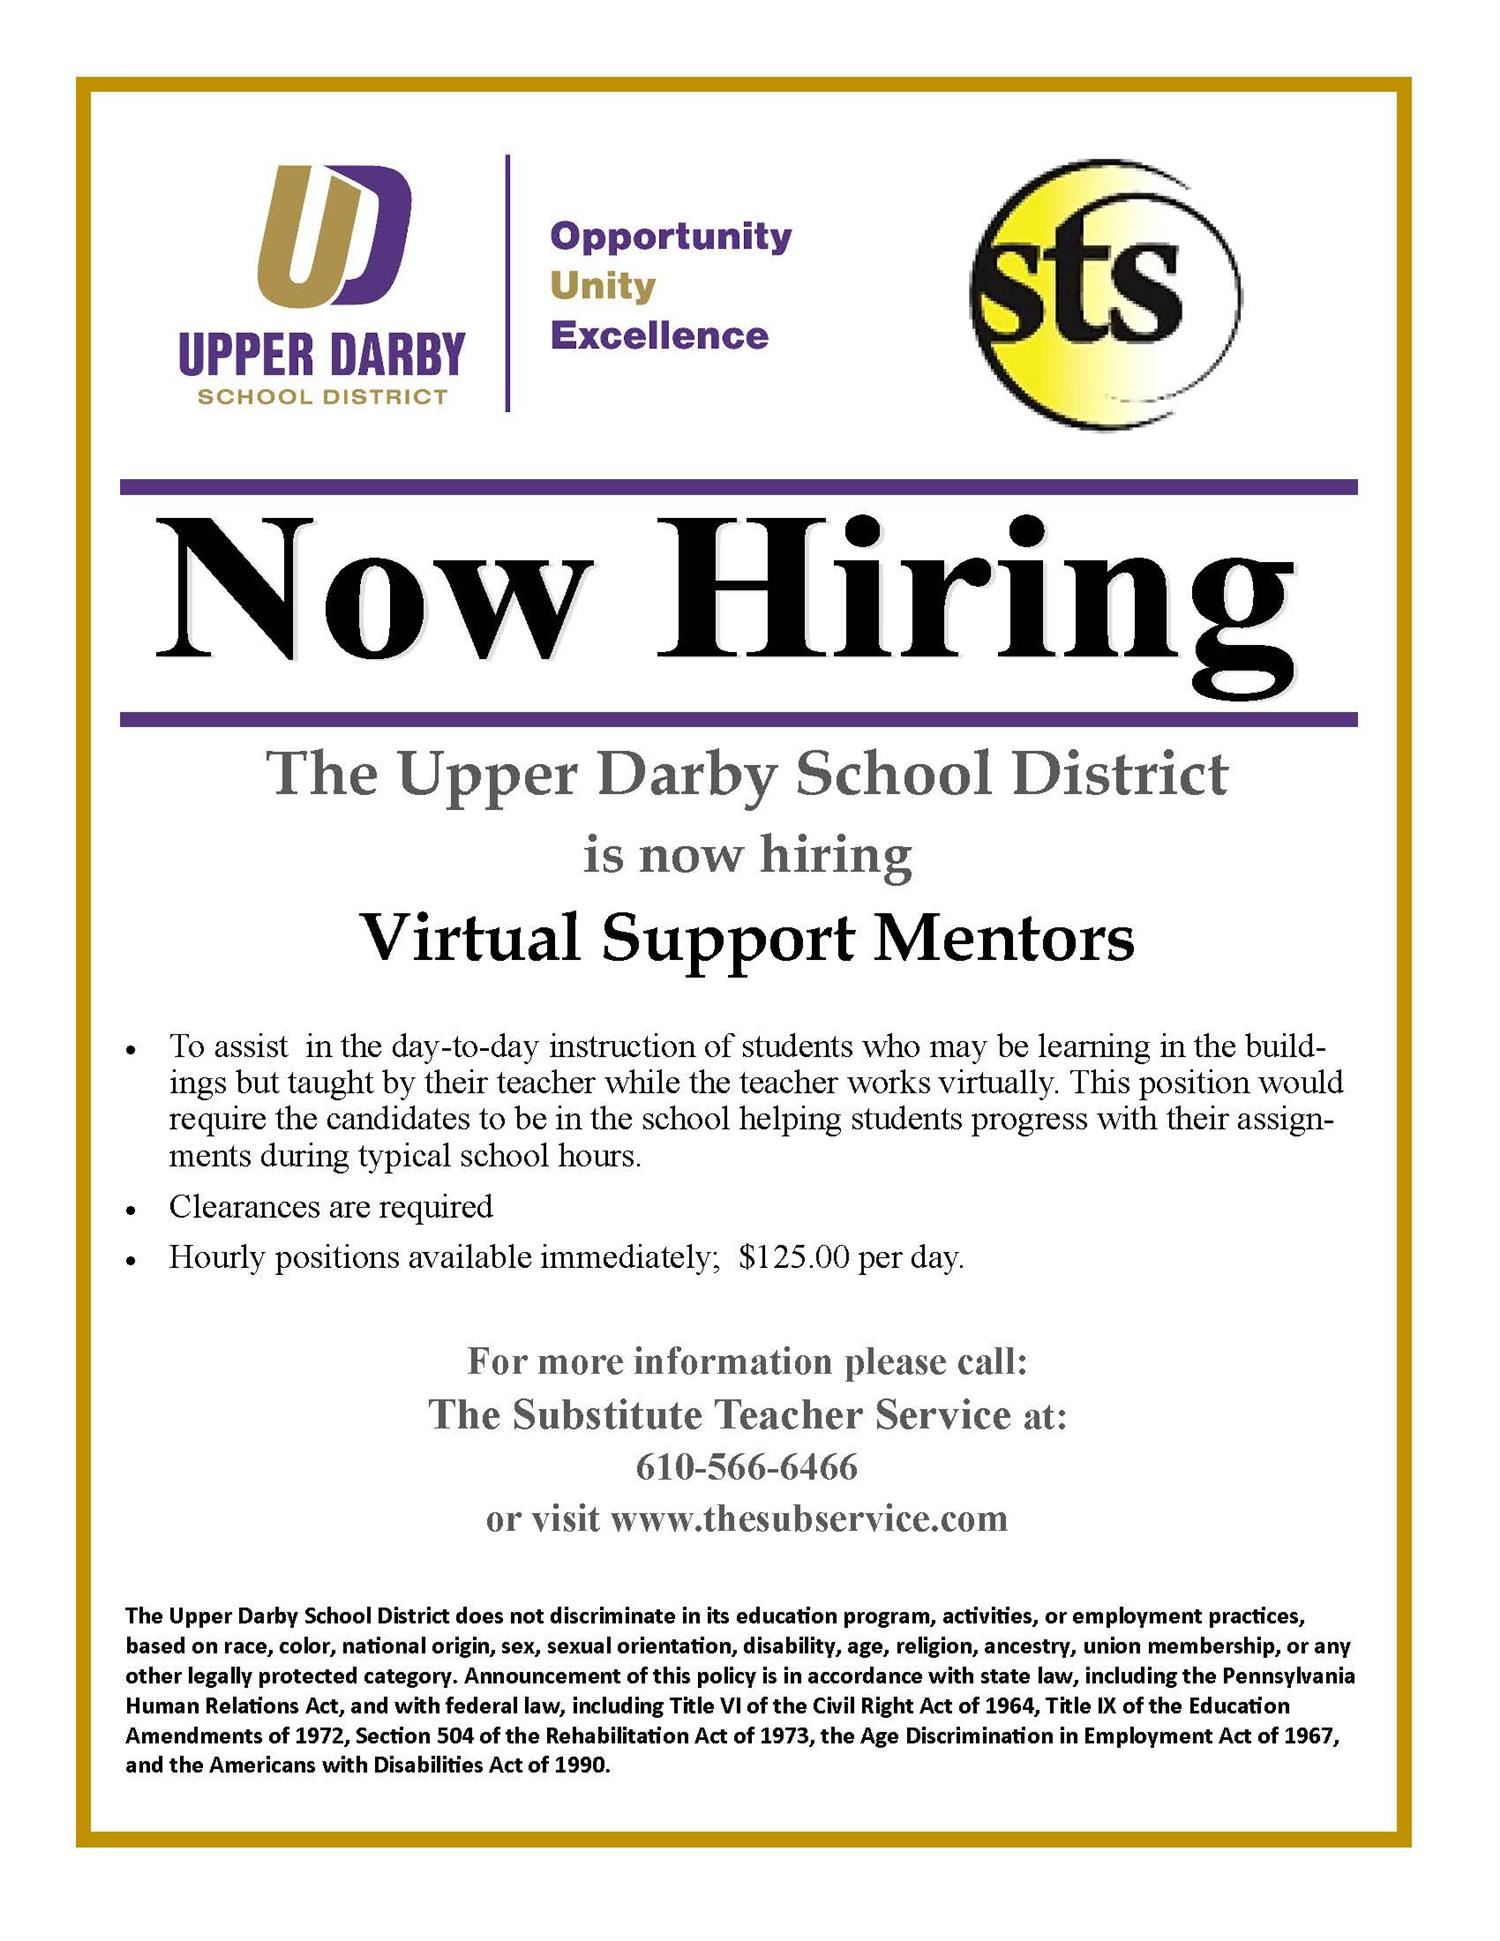 The Upper Darby School District is now hiring Virtual Support Mentors